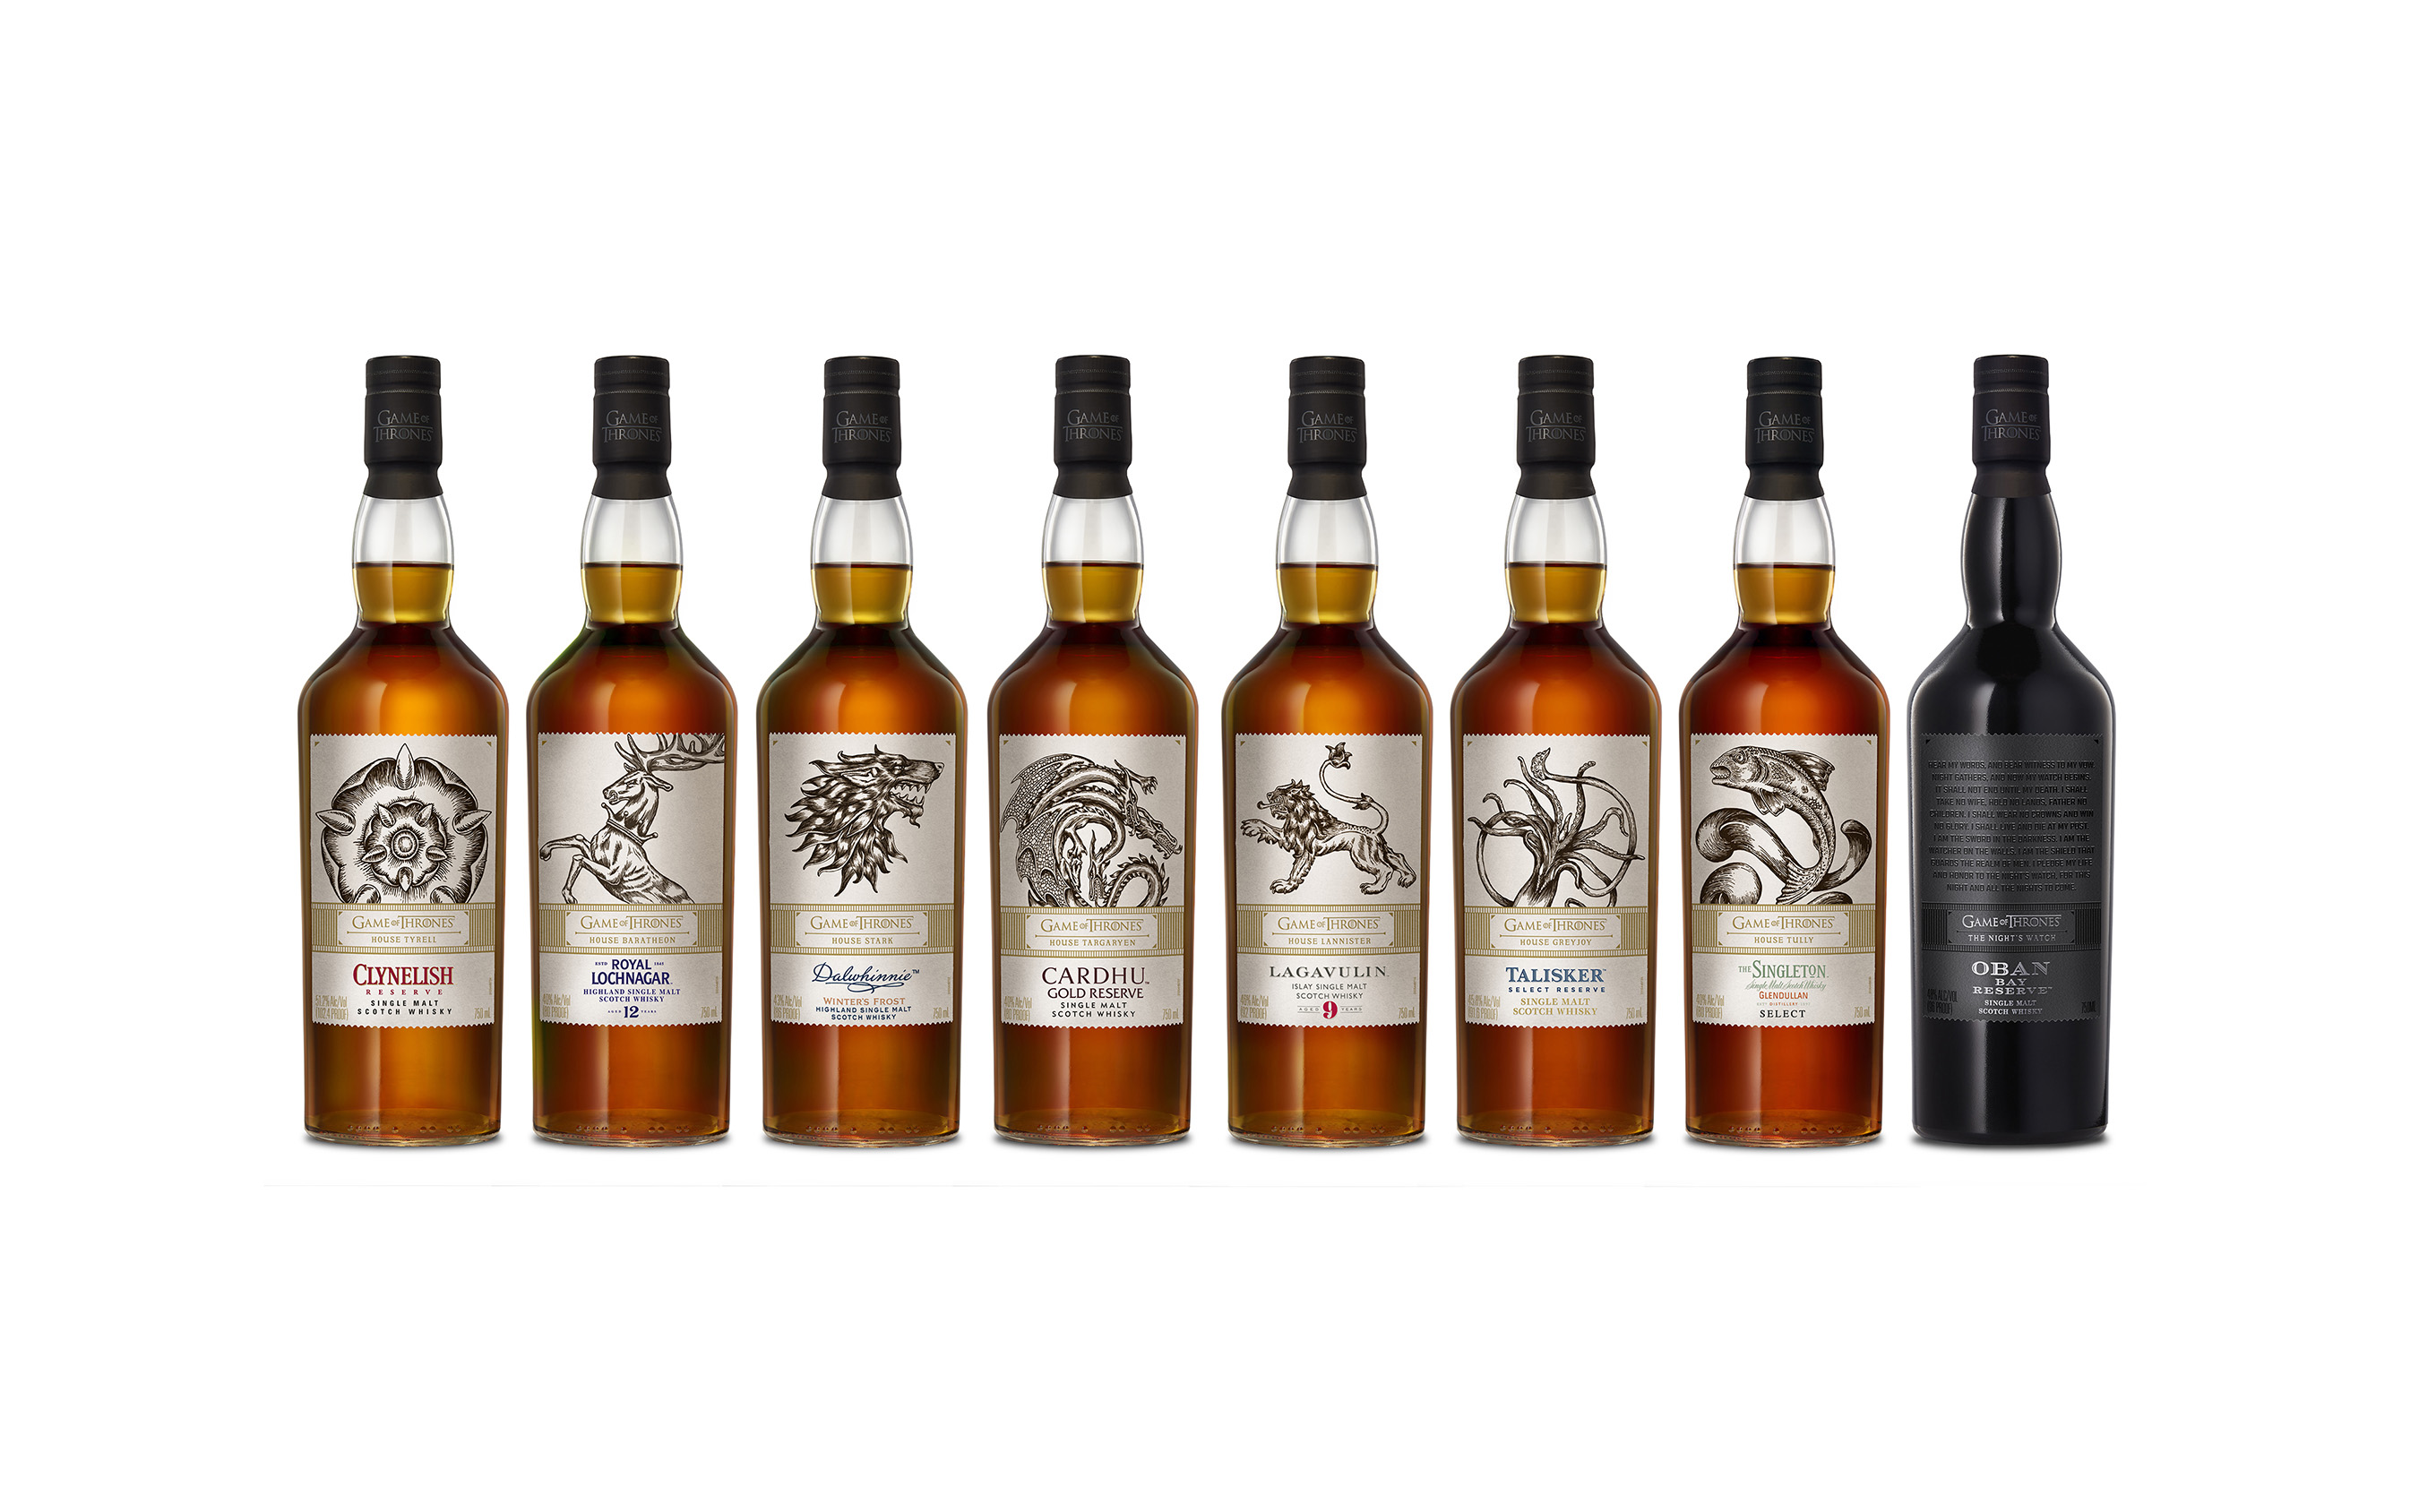 Introducing The Game of Thrones Single Malt Scotch Whisky Collection